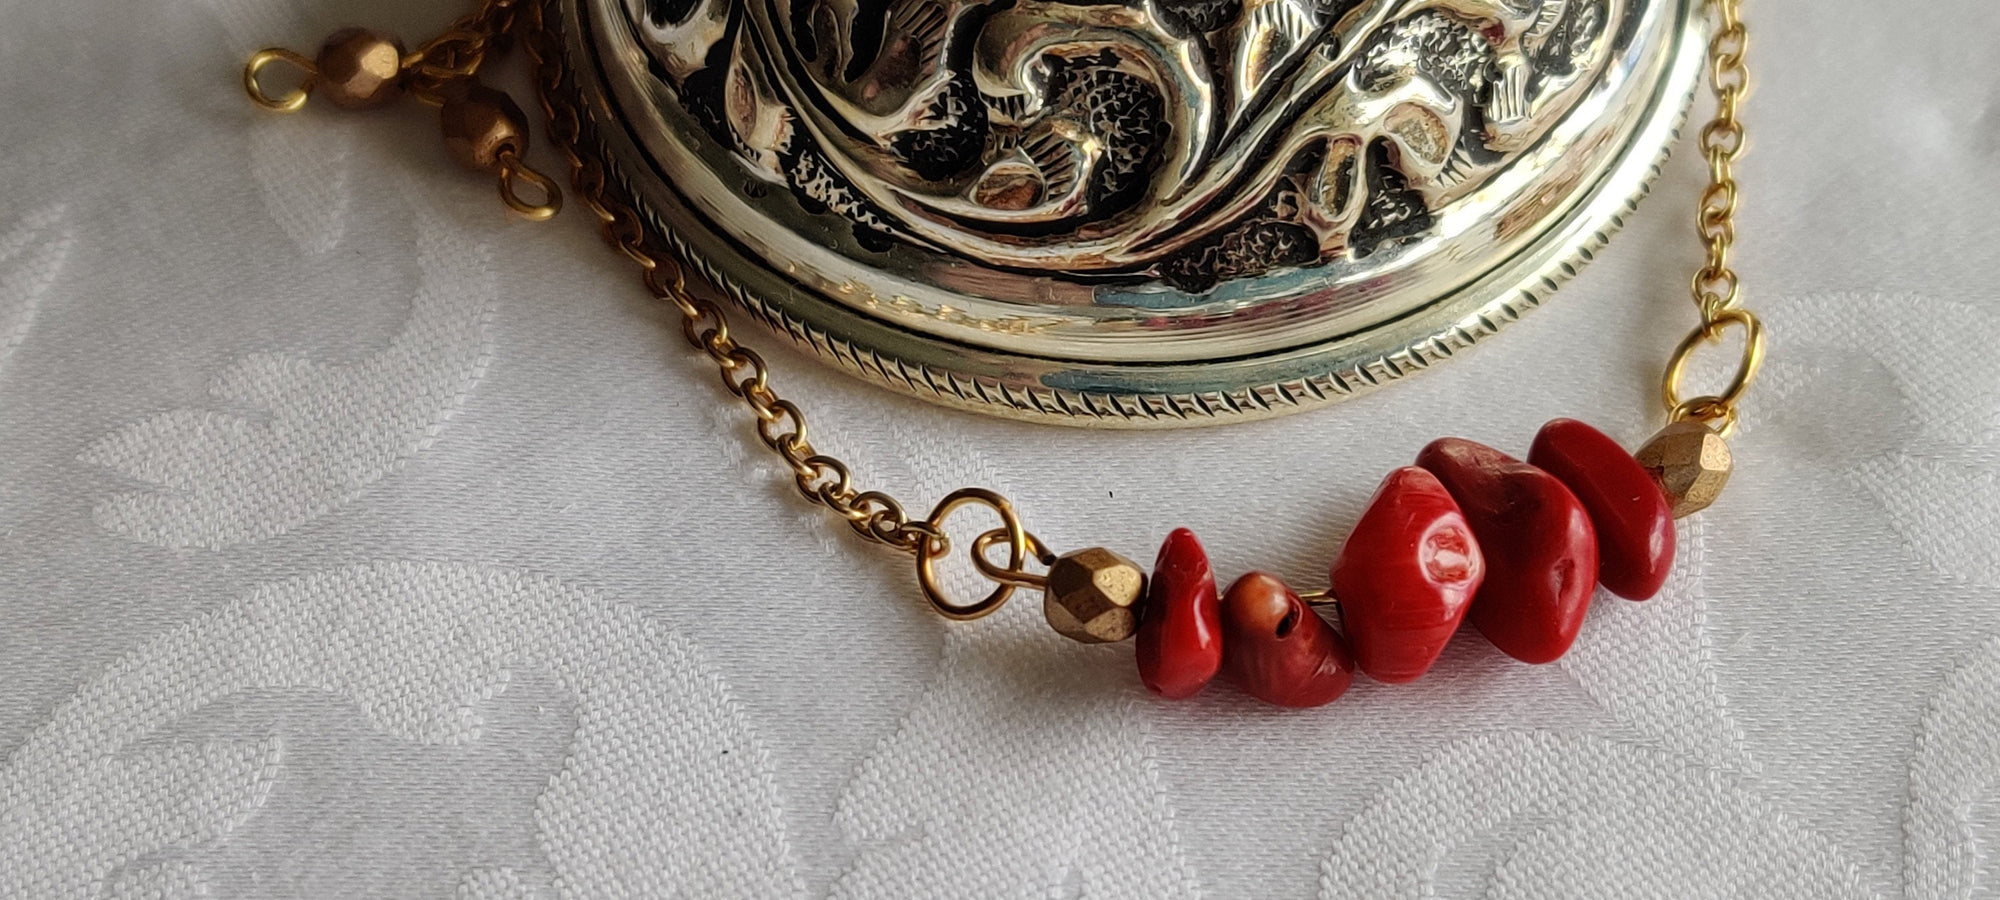 Healing crystals, Gift for her, Minimalist, Necklace, Carnelian, Gold plated chain